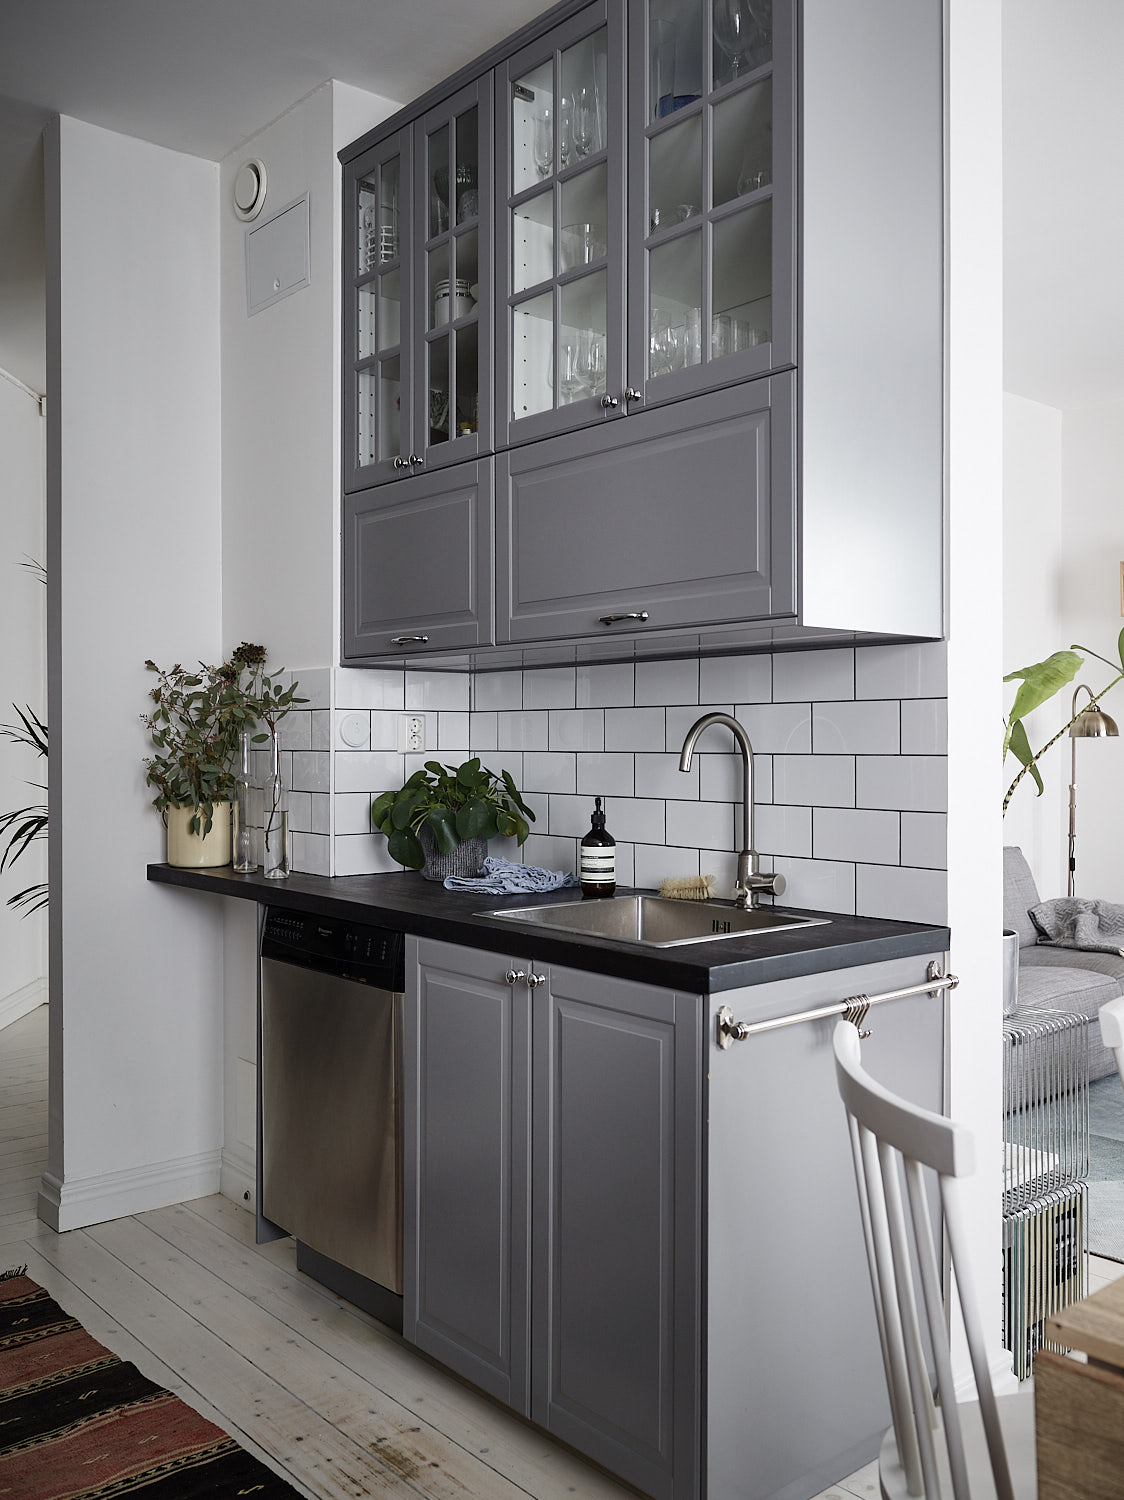 Grey Kitchen With A Tile Wall COCO LAPINE DESIGNCOCO LAPINE DESIGN - Tiles to go with a grey kitchen